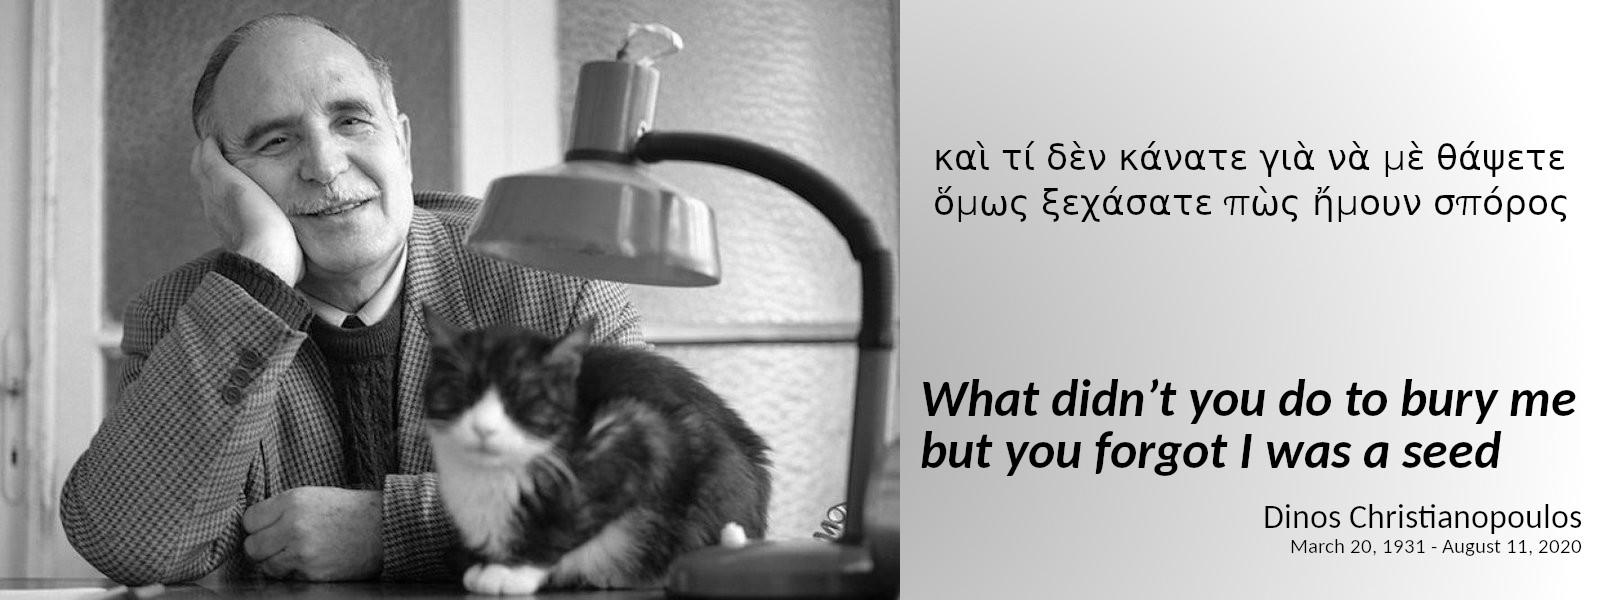 """What didn't you do to bury me, but you forgot I was a seed"" ~ Dinos Christianopoulos [1600×600]"